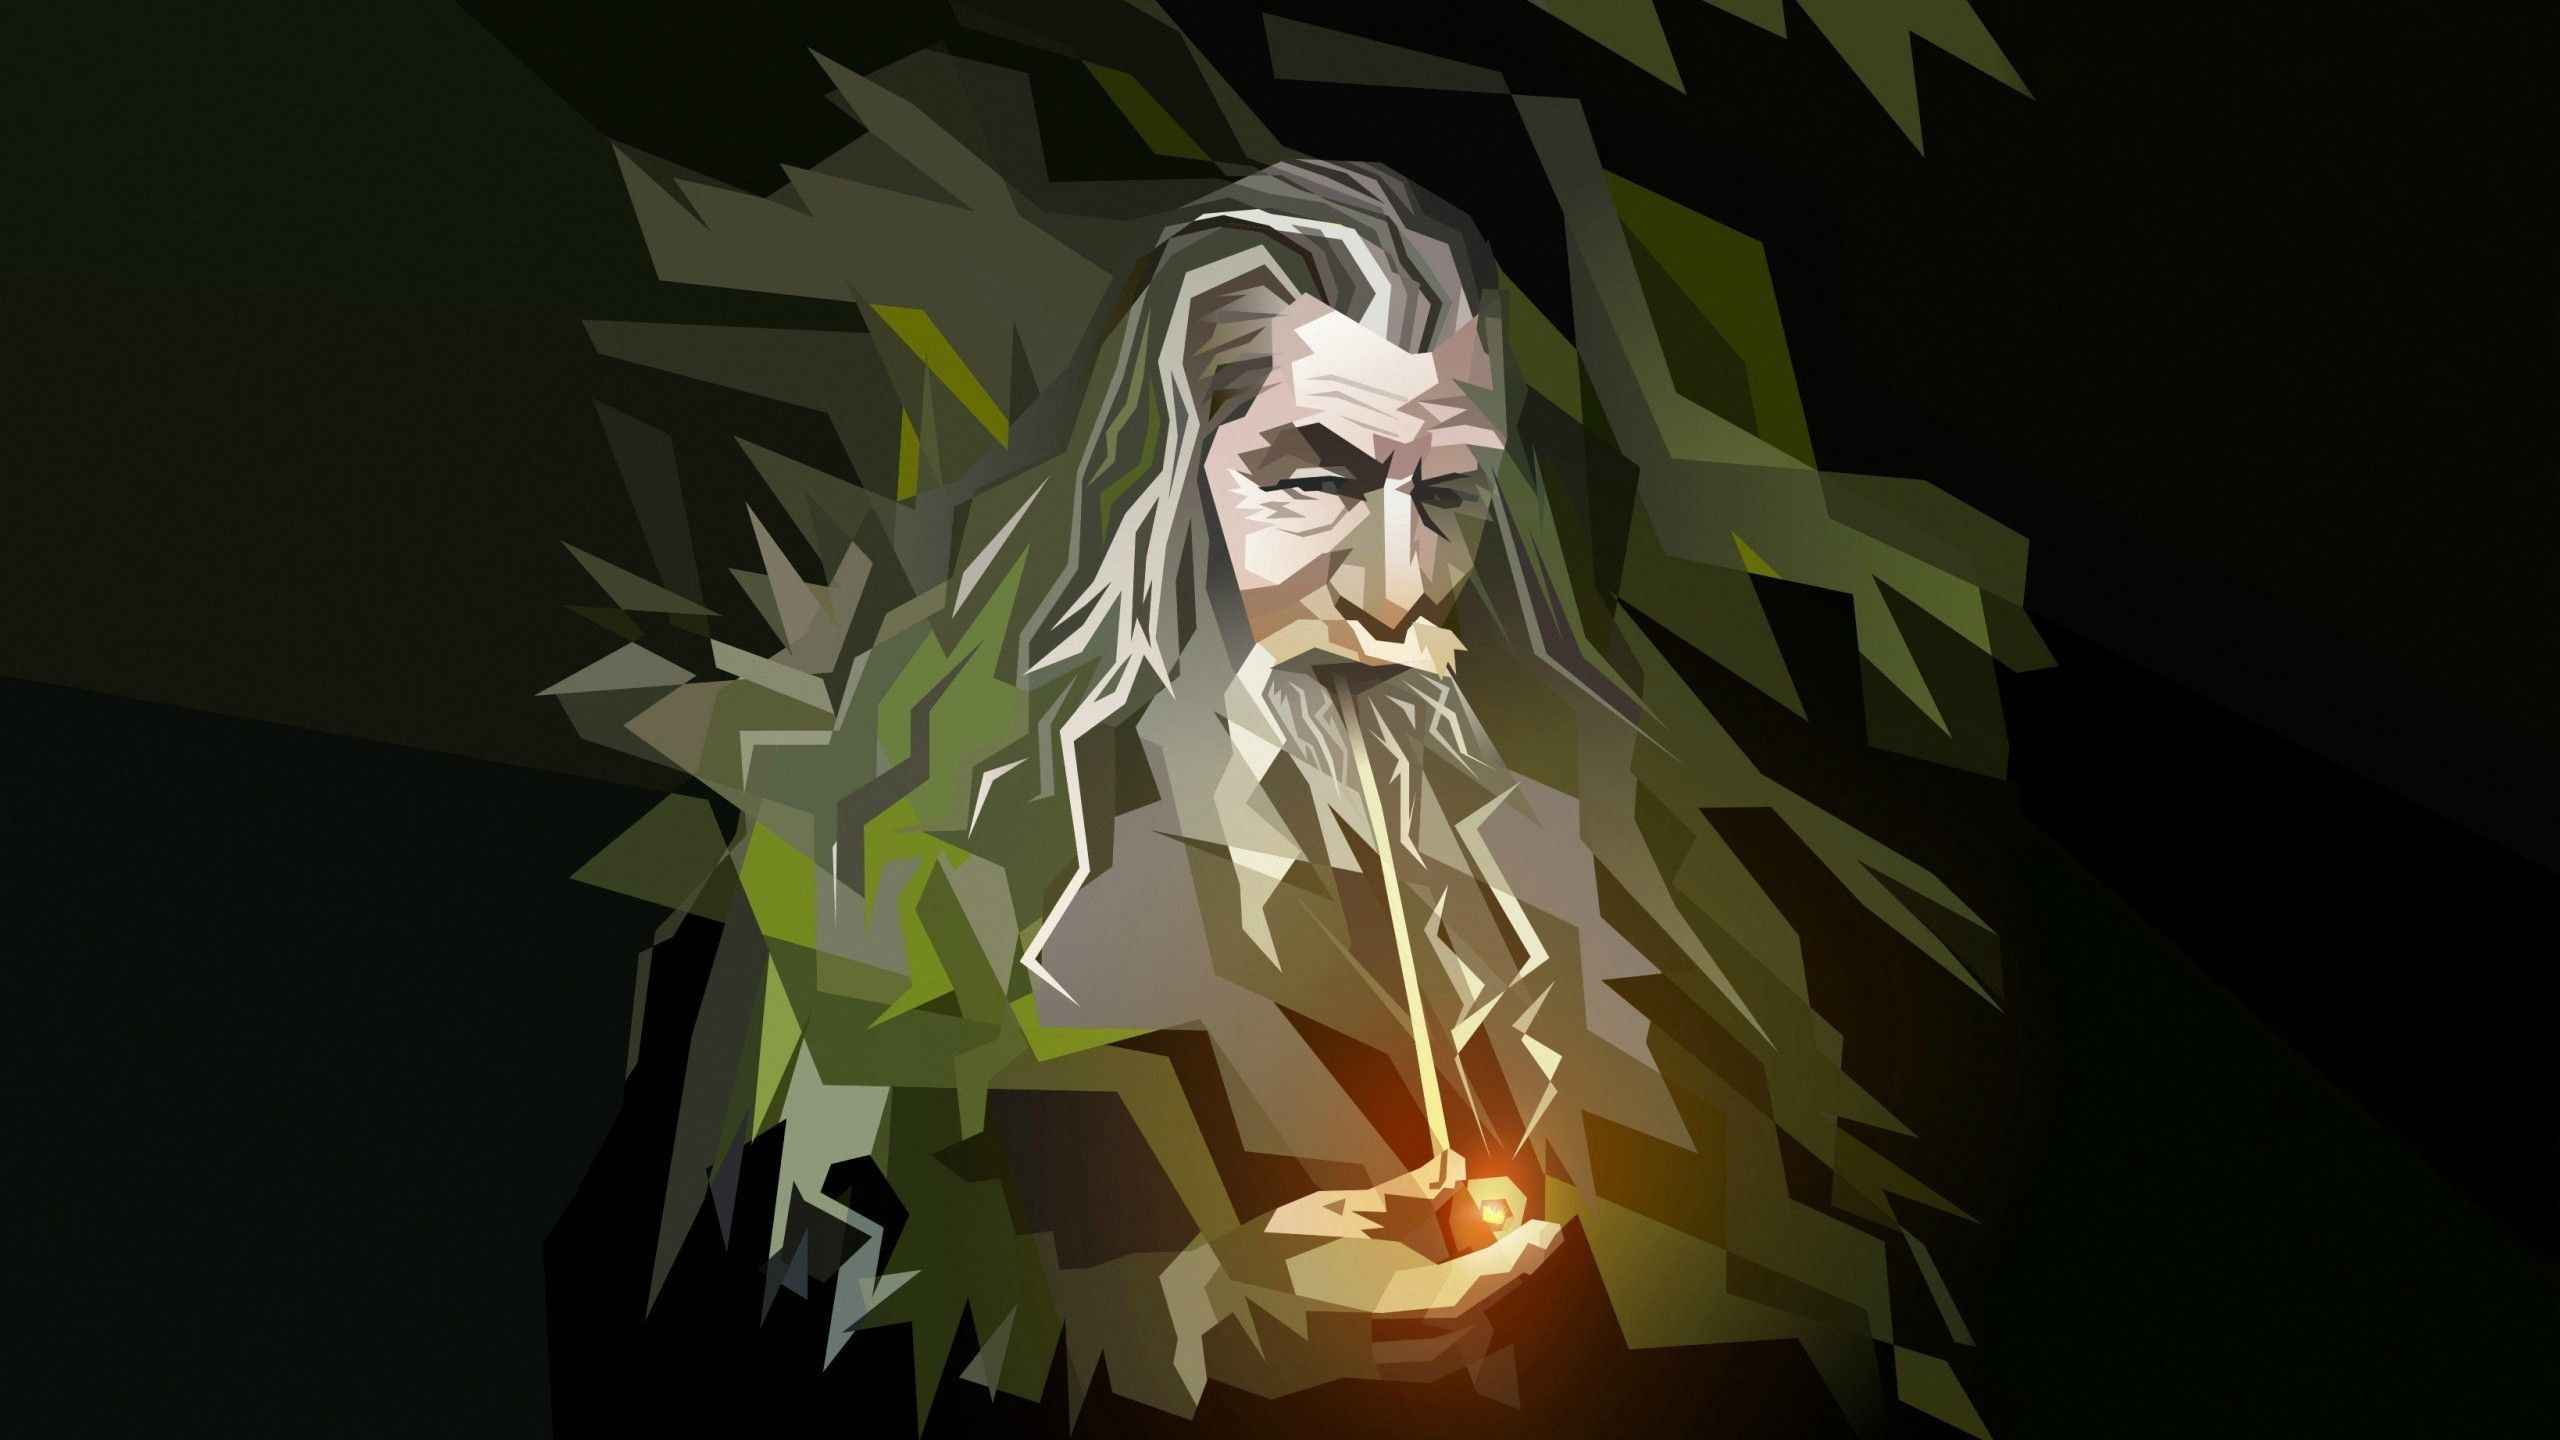 Lord of the rings iphone wallpaper 74 images 1080x1920 lord of the rings balrog gandalf fire tolkien magic monster voltagebd Image collections